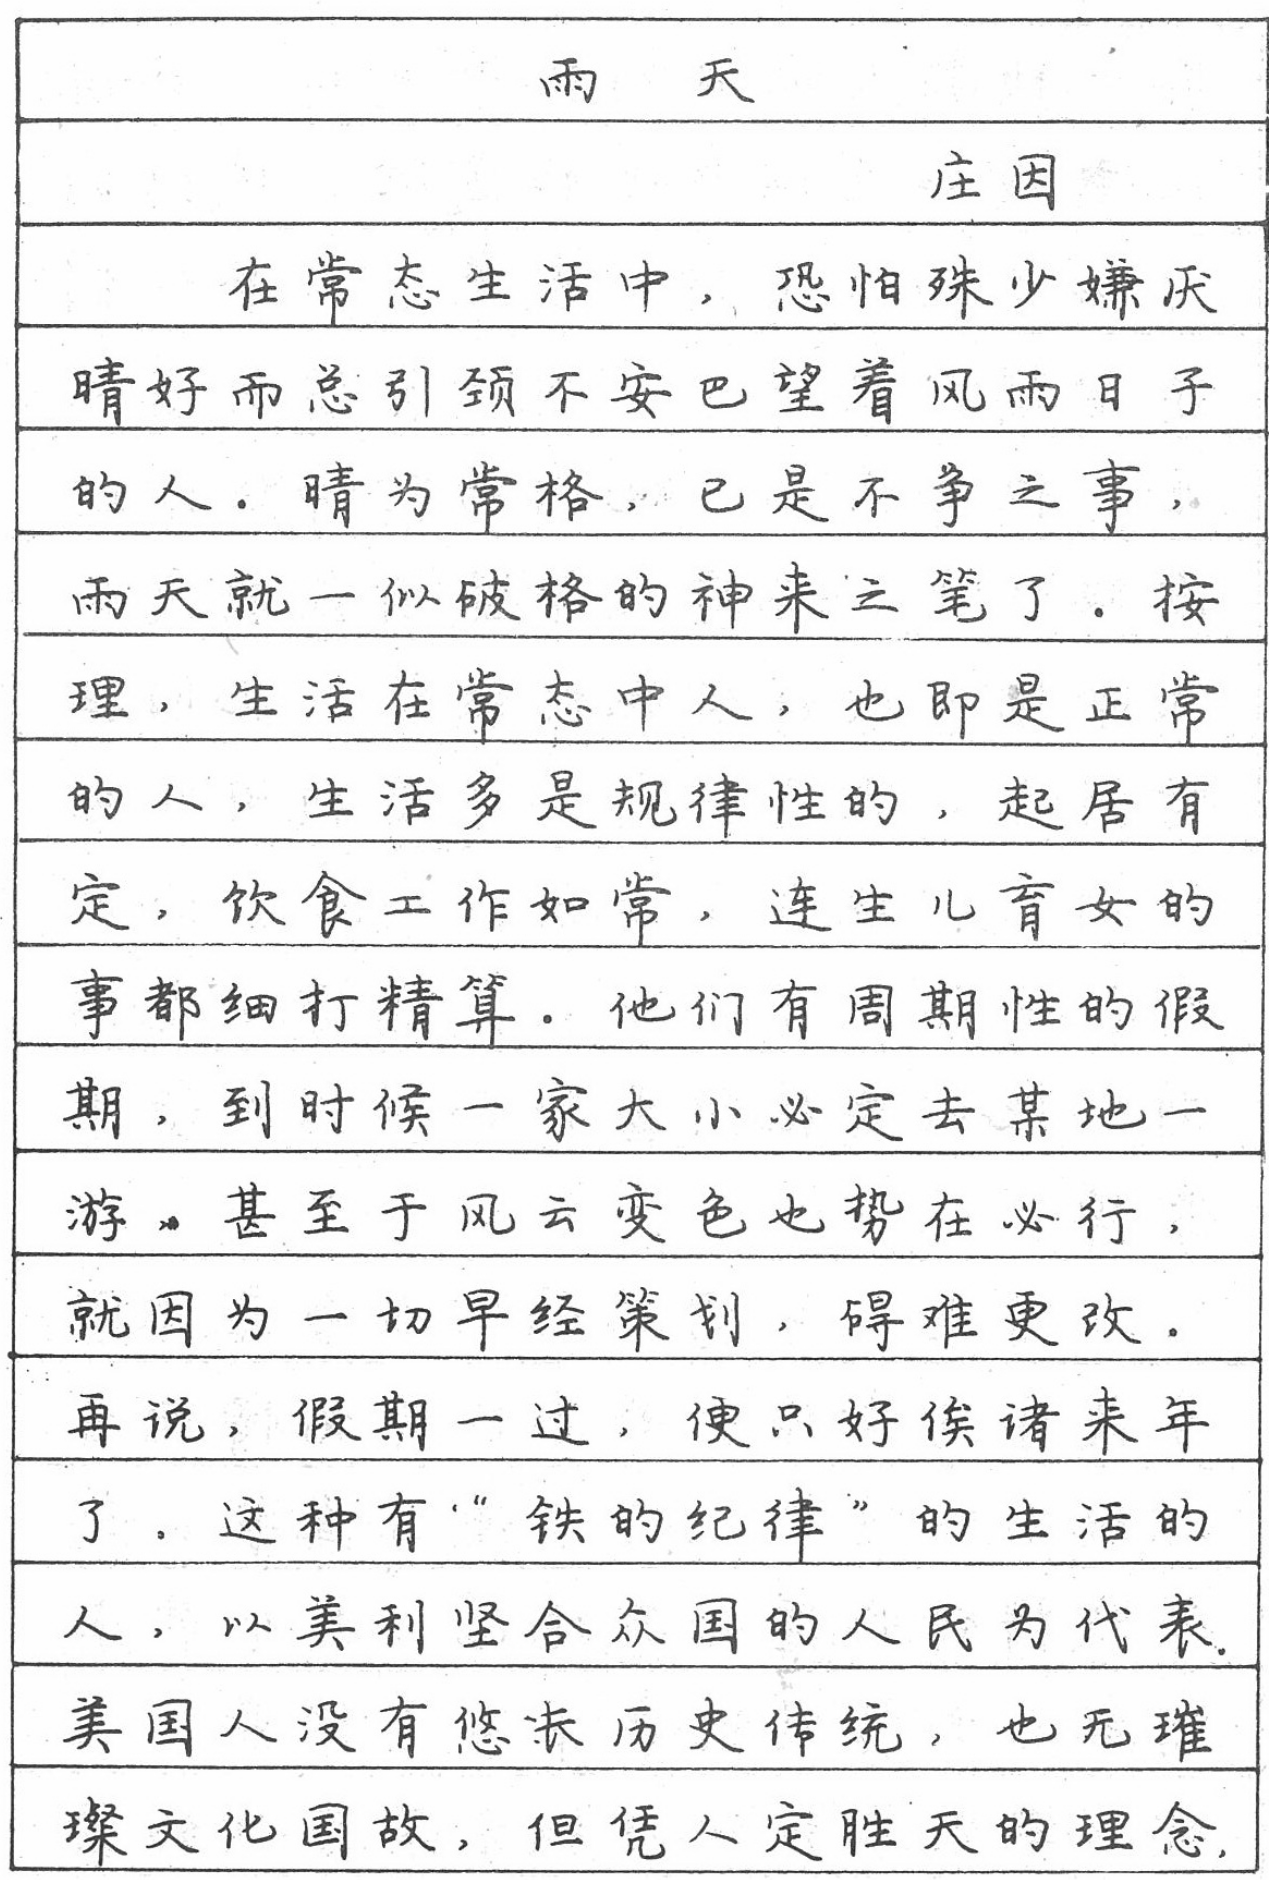 Learning To Read Handwritten Chinese